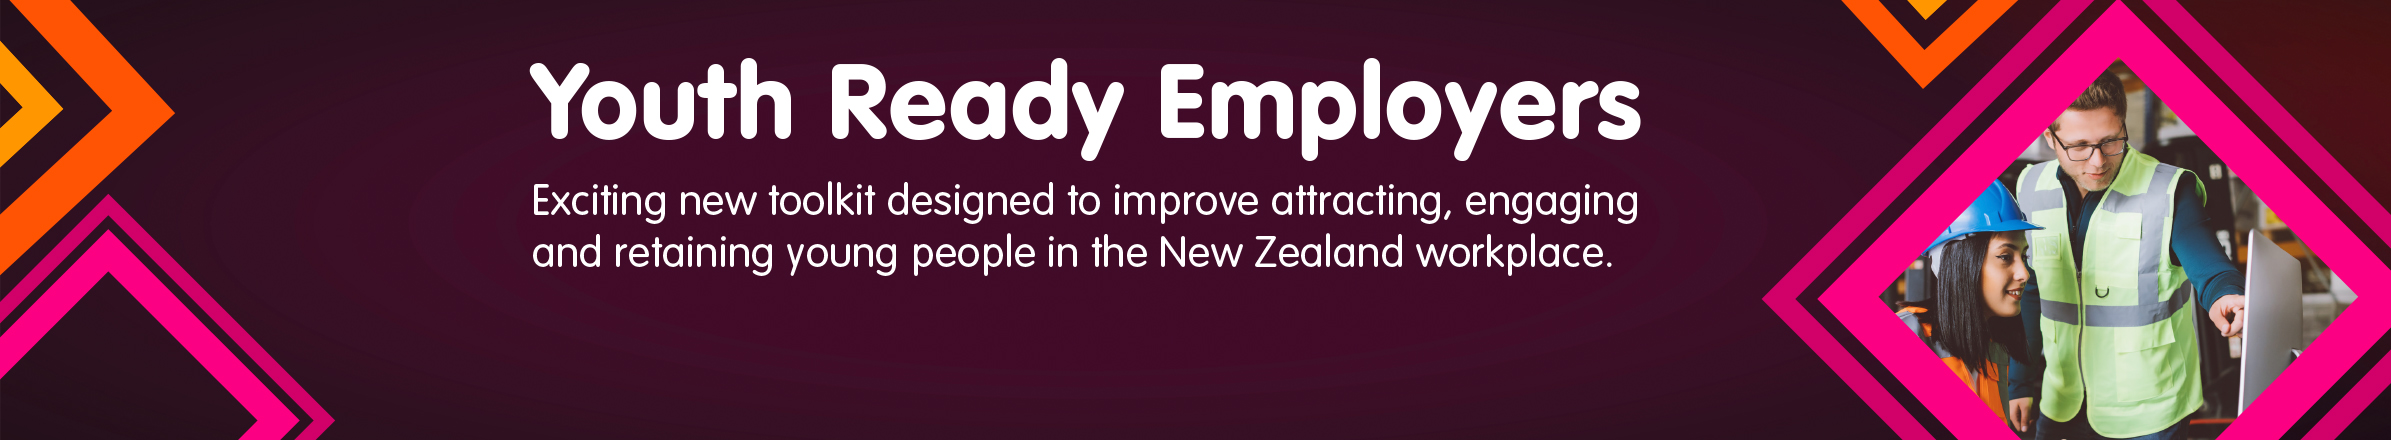 JACK PARSONS - YOUTH READY EMPLOYERS (FEB 2020)